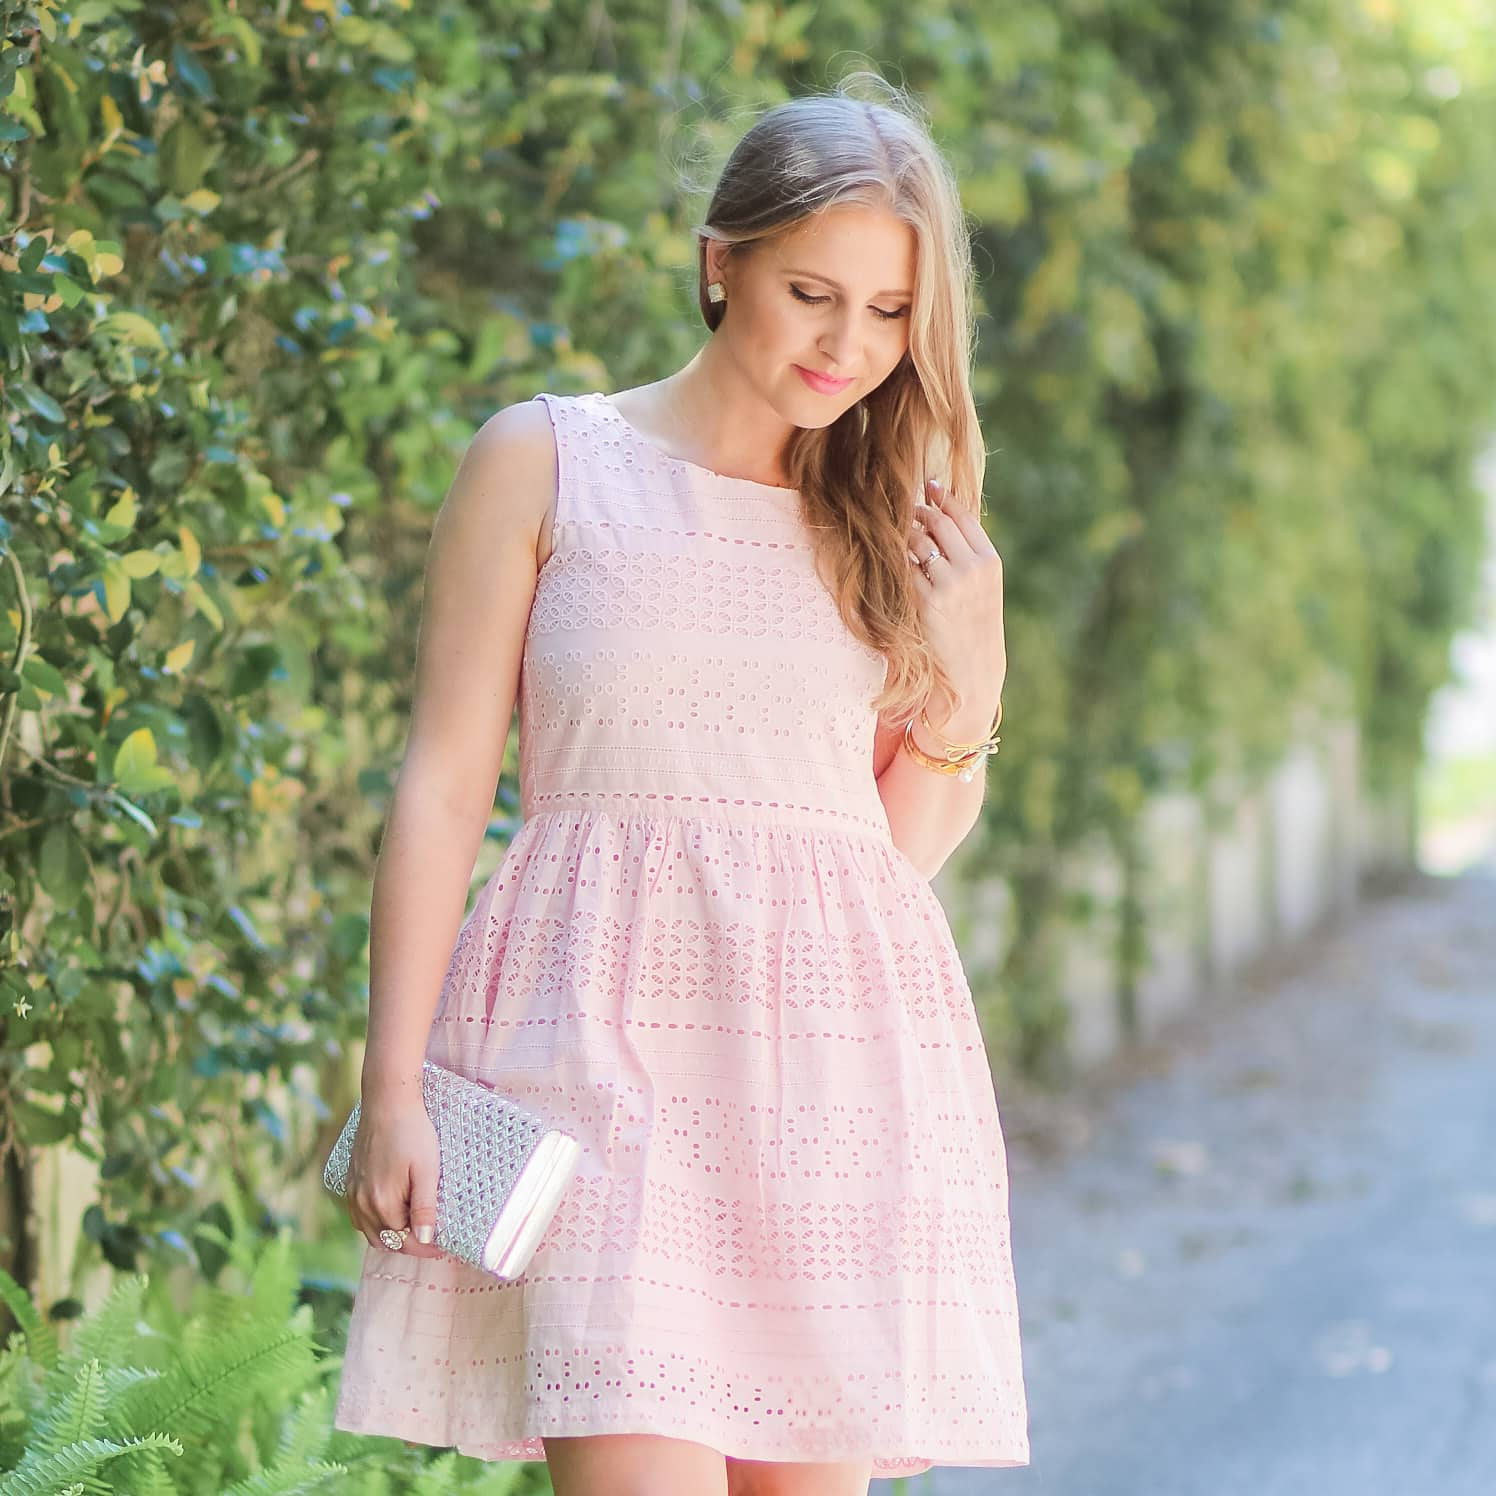 What A Peach: The Perfect Outfit to Wear to A Wedding